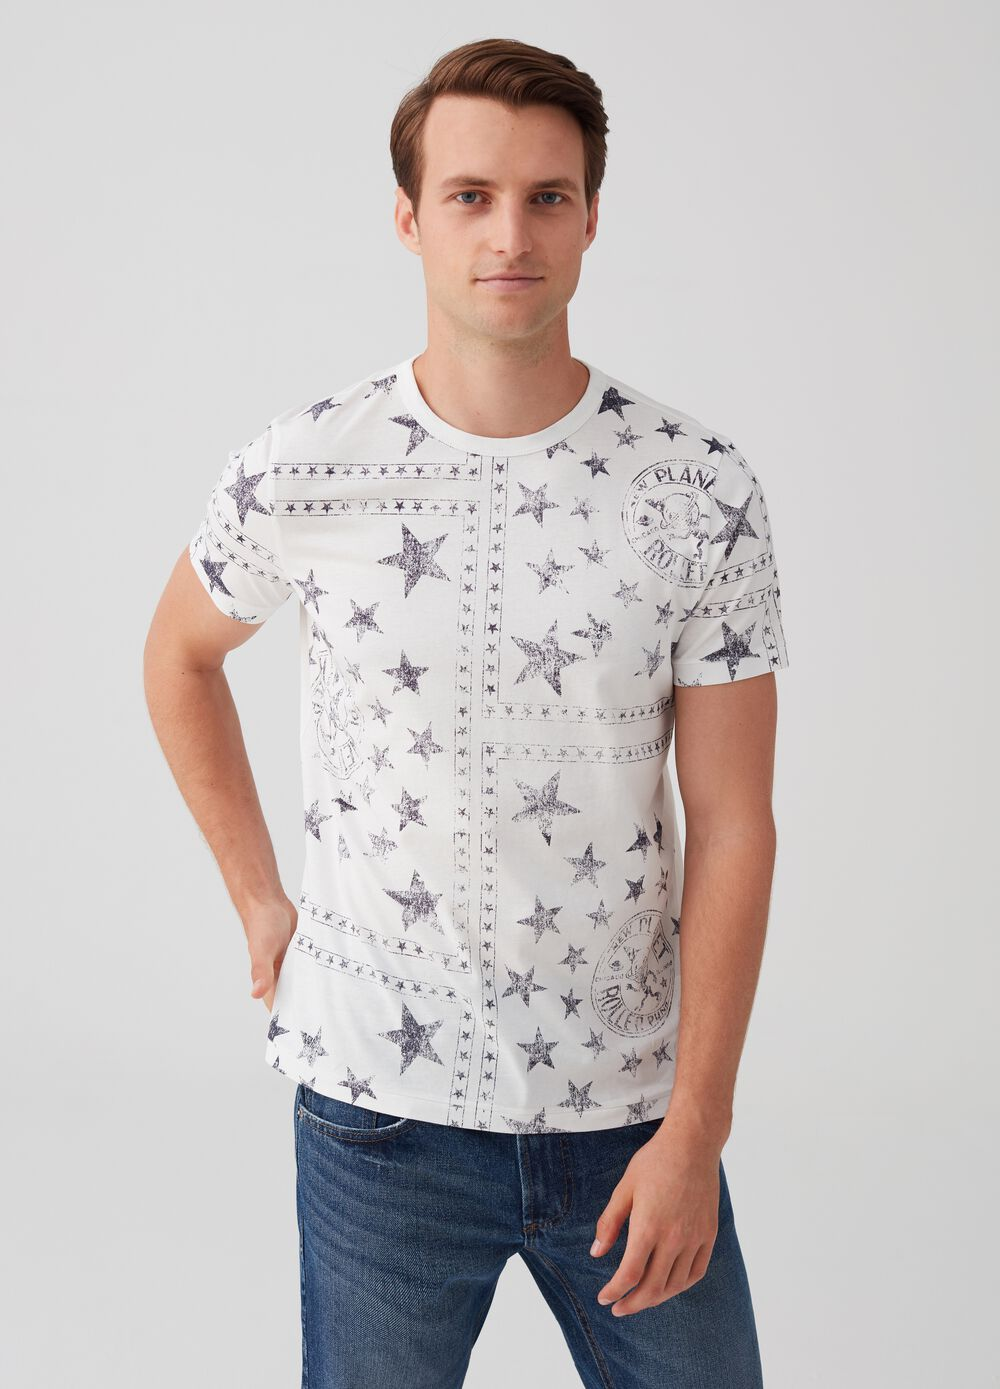 T-shirt with geometric and star pattern